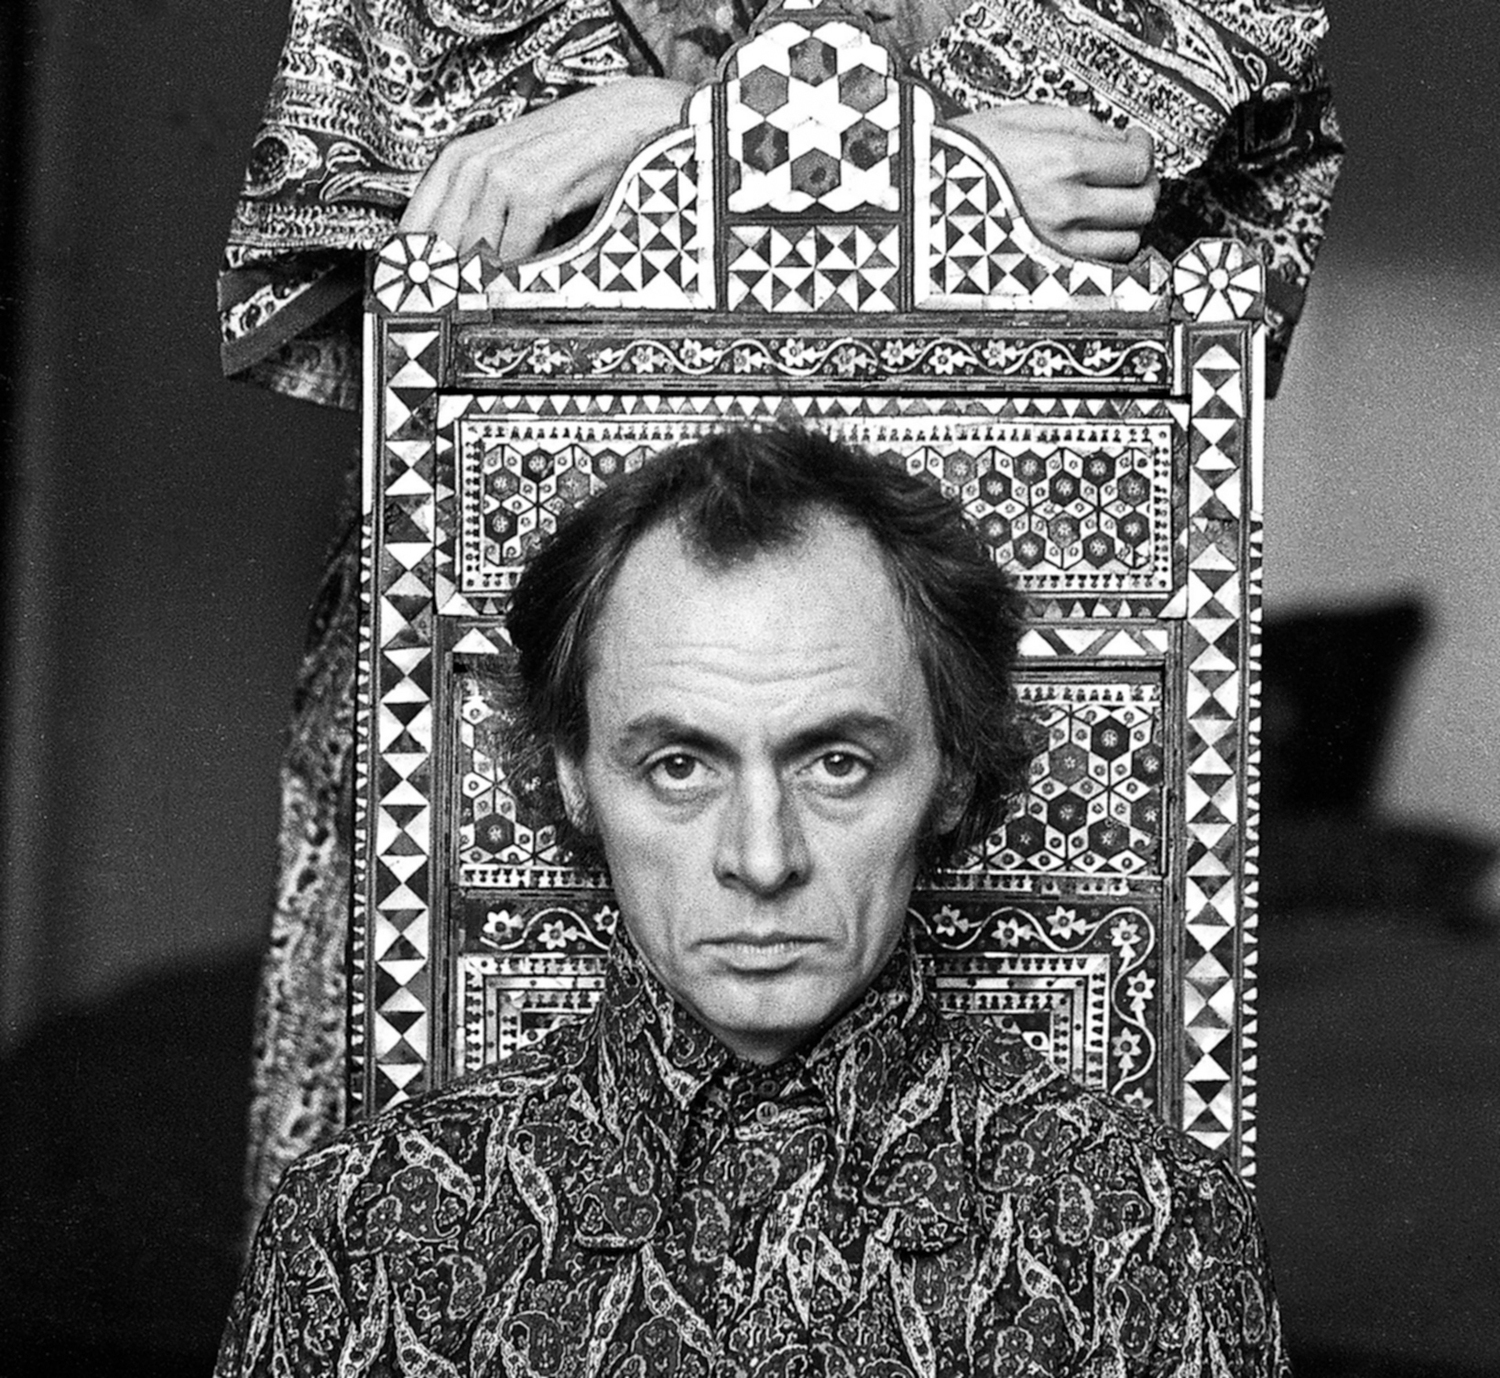 All Divided Selves, 2011